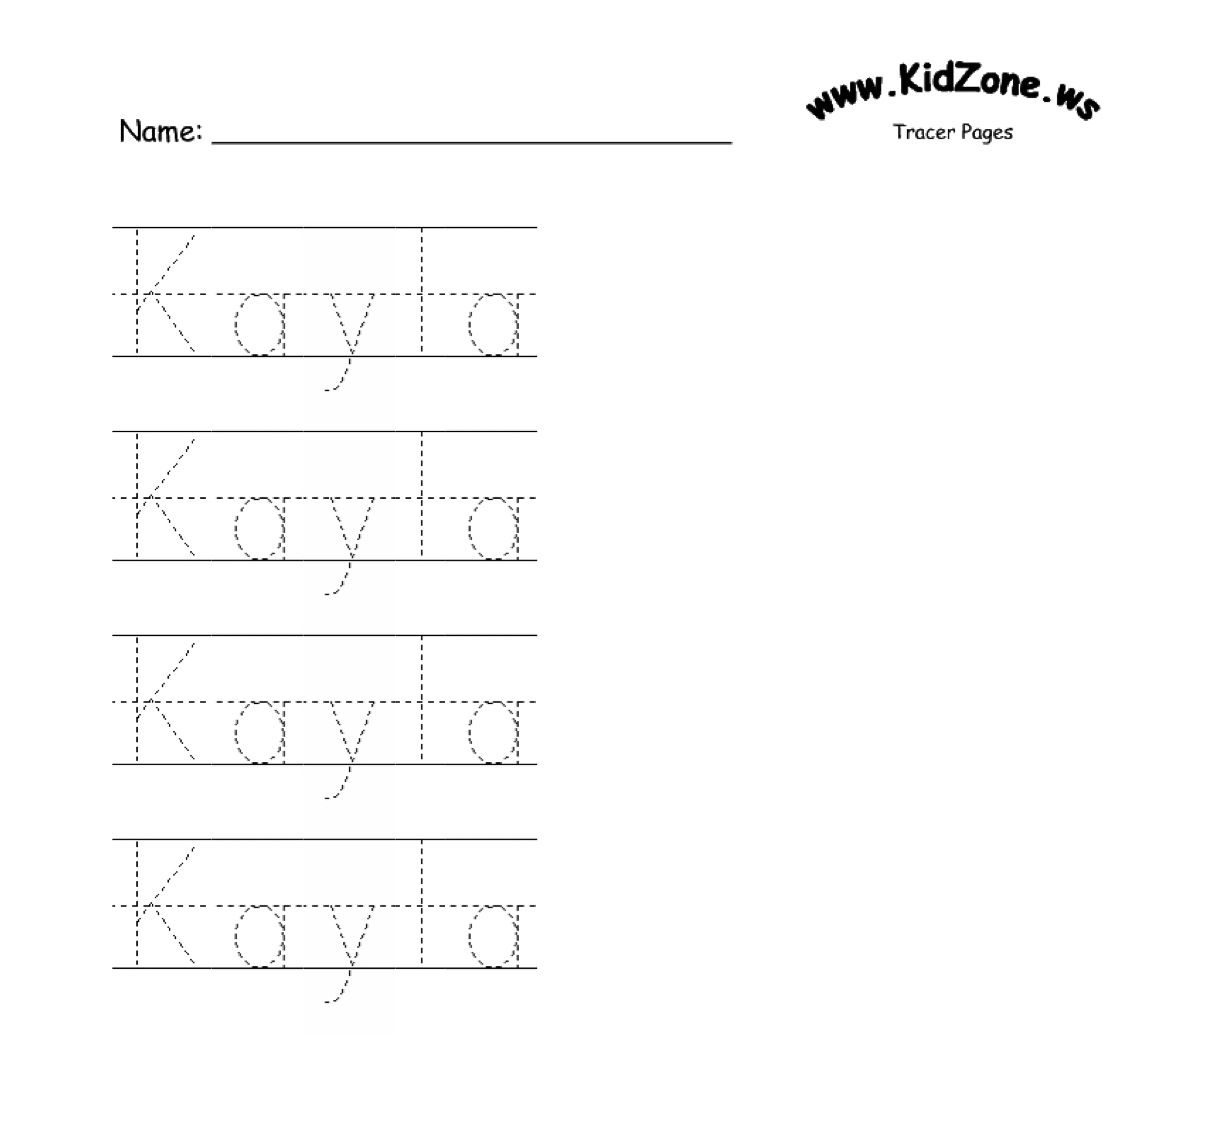 Custom Name Tracer Pages | Preschool Writing, Name Tracing pertaining to Name Tracing Kidzone